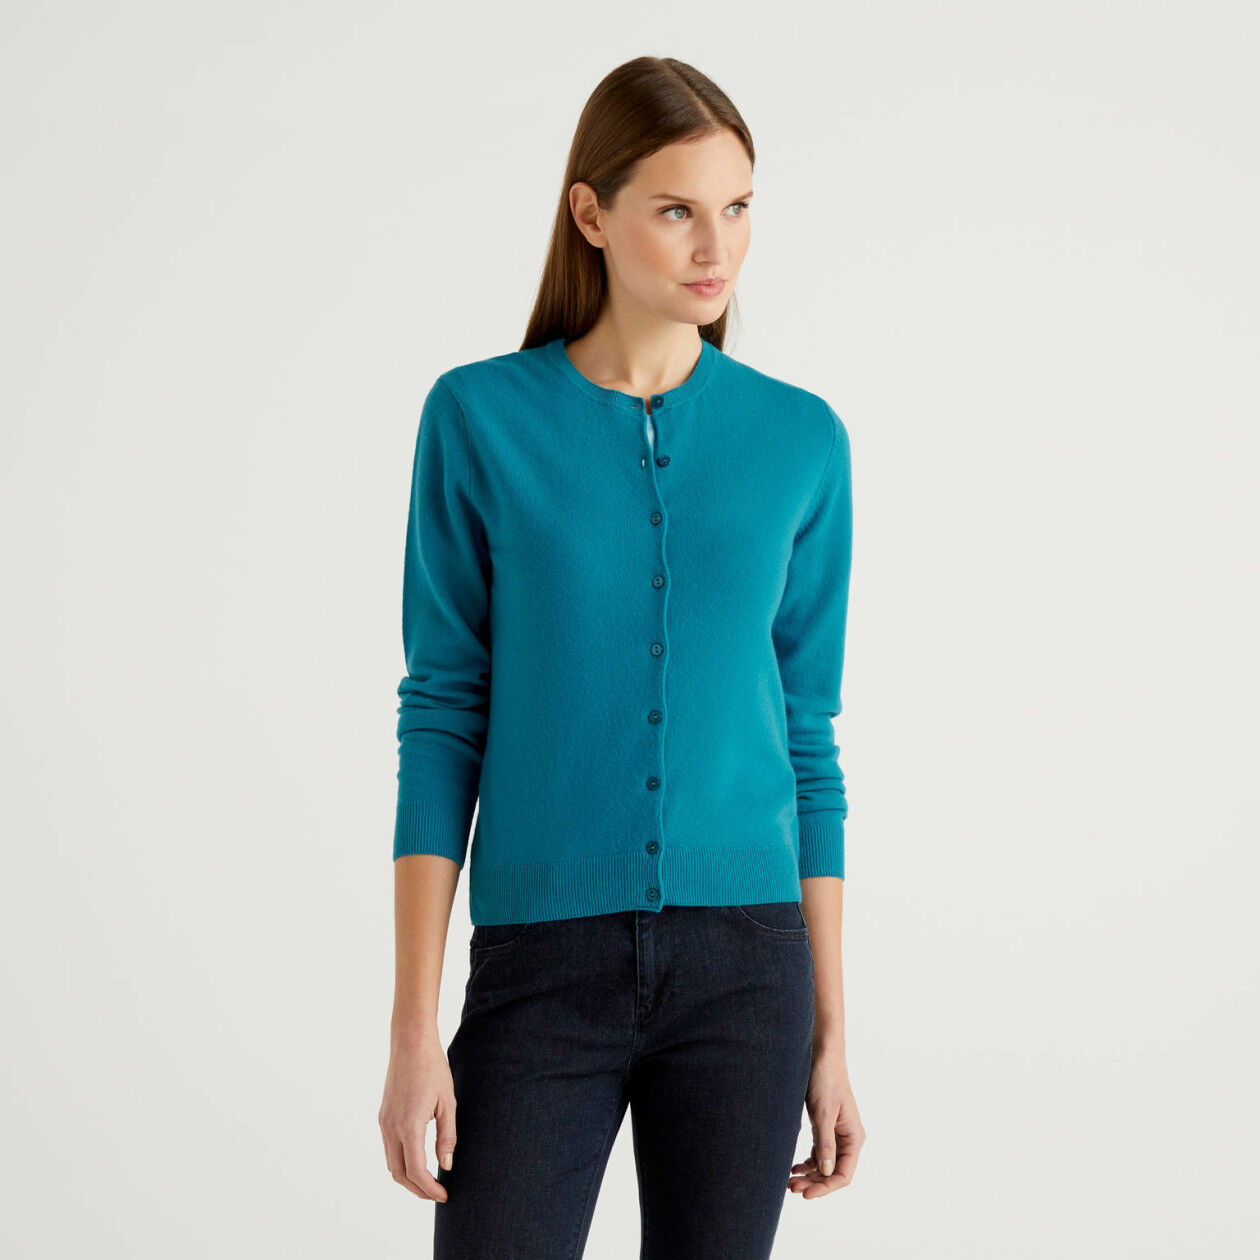 Teal crew neck cardigan in pure virgin wool